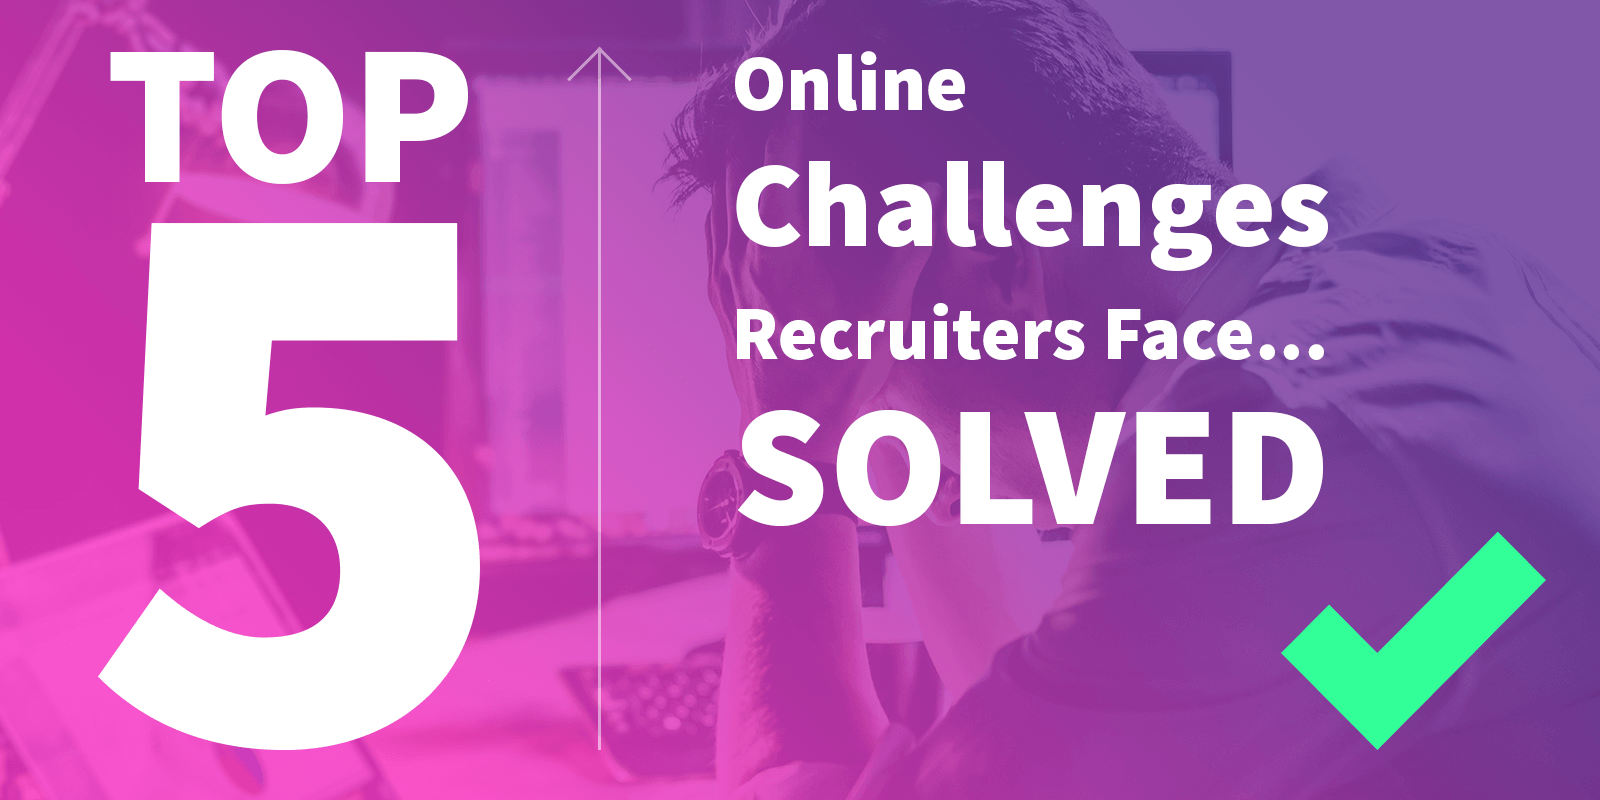 Top 5 Online Challenges Recruiters Face – Solved